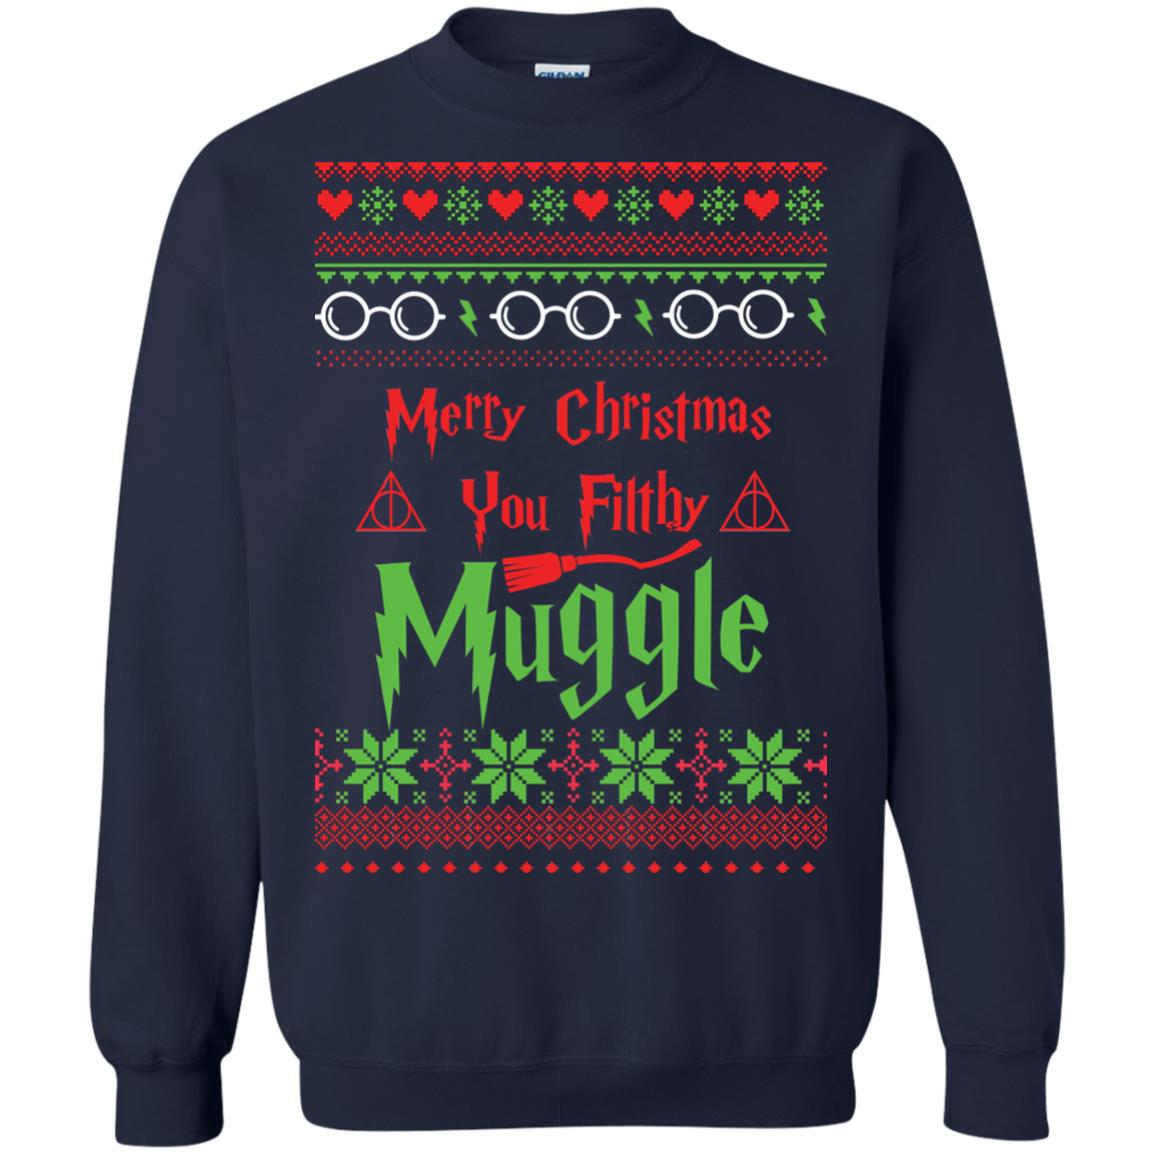 image 778px Merry Christmas You Filthy Muggle Harry Potter Christmas Sweater